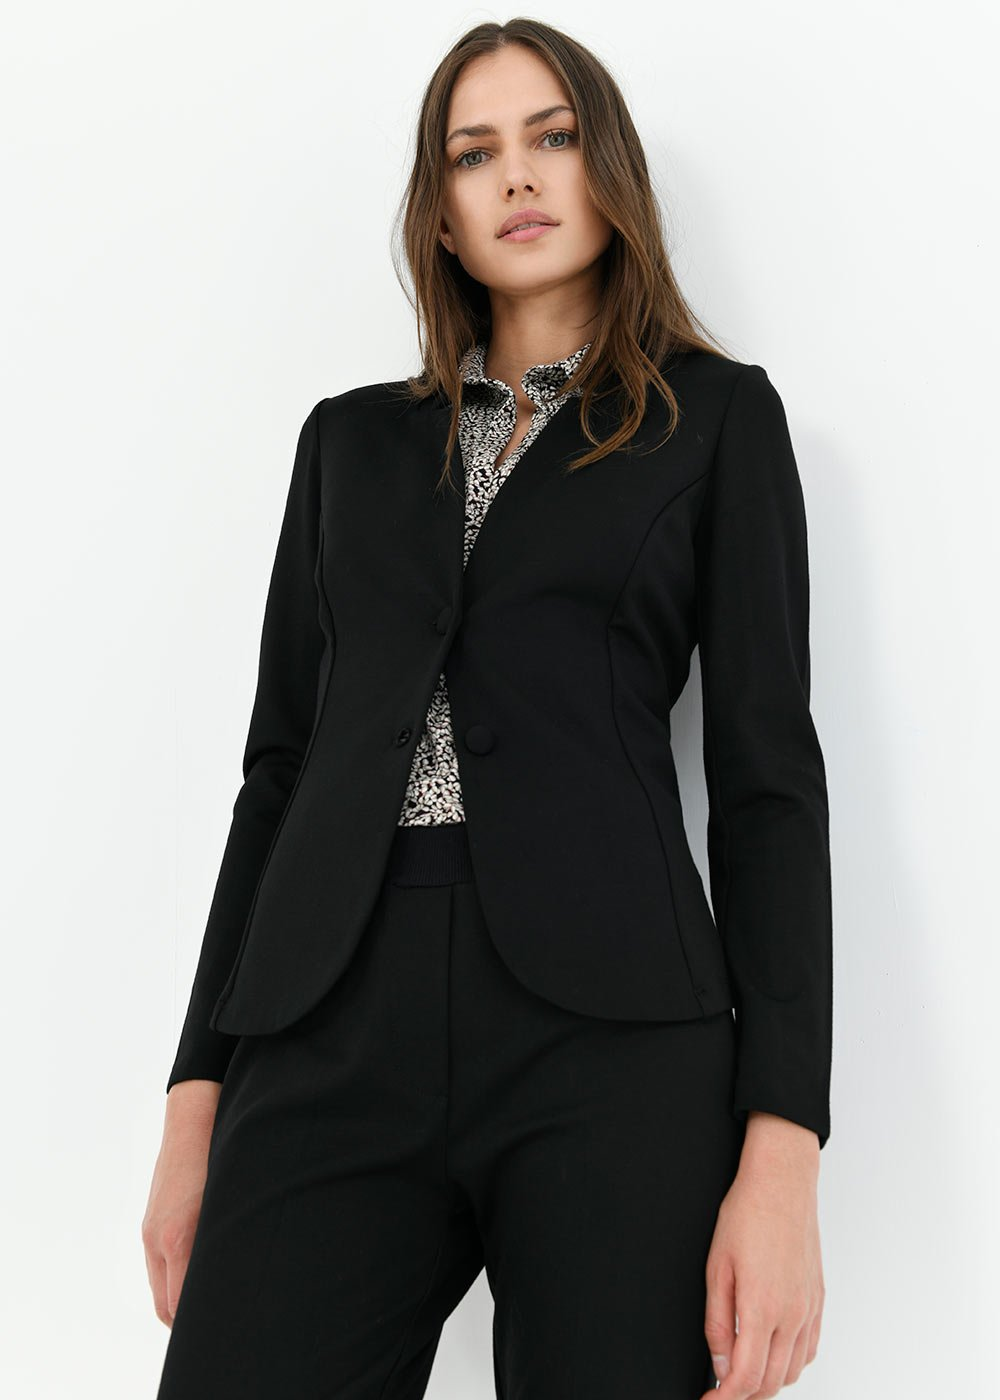 Corynn jacket model cardigan - Black - Woman